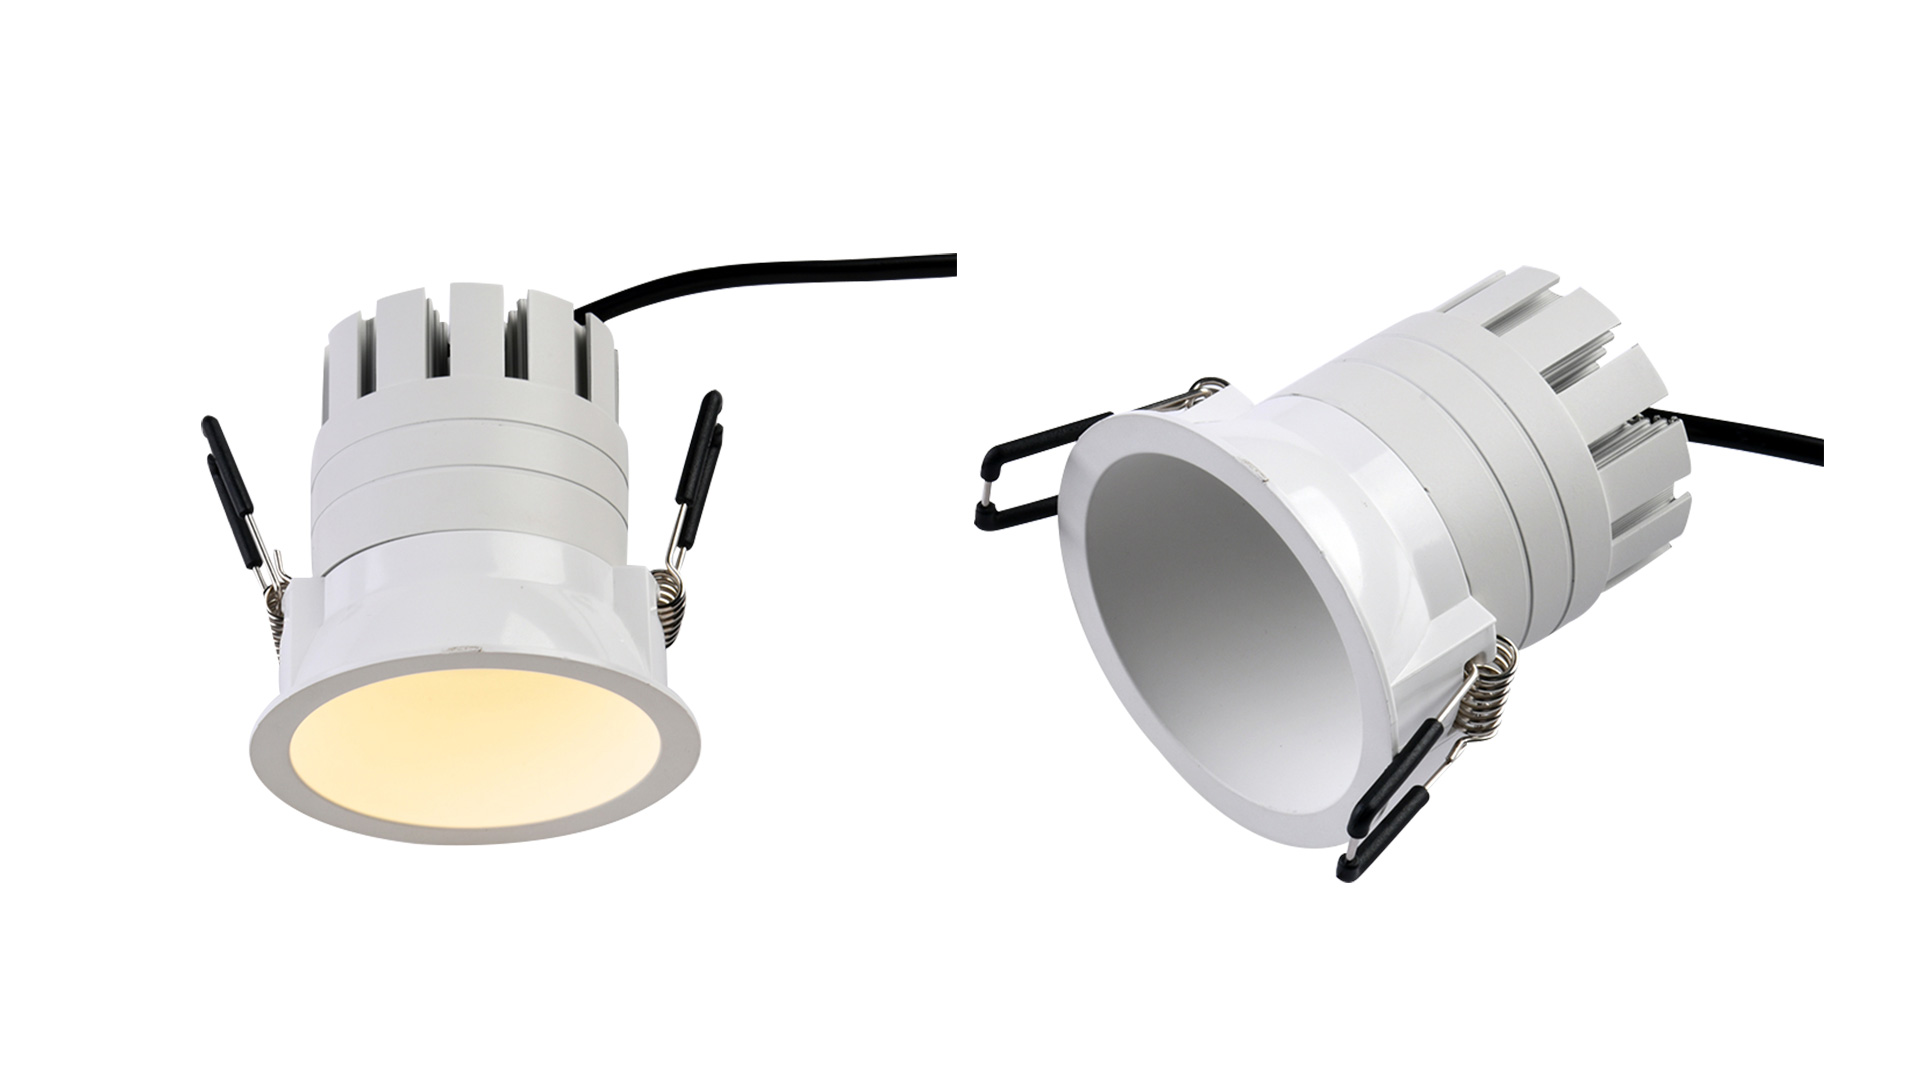 Deep Tube Anti-Rotation Downlight 05100